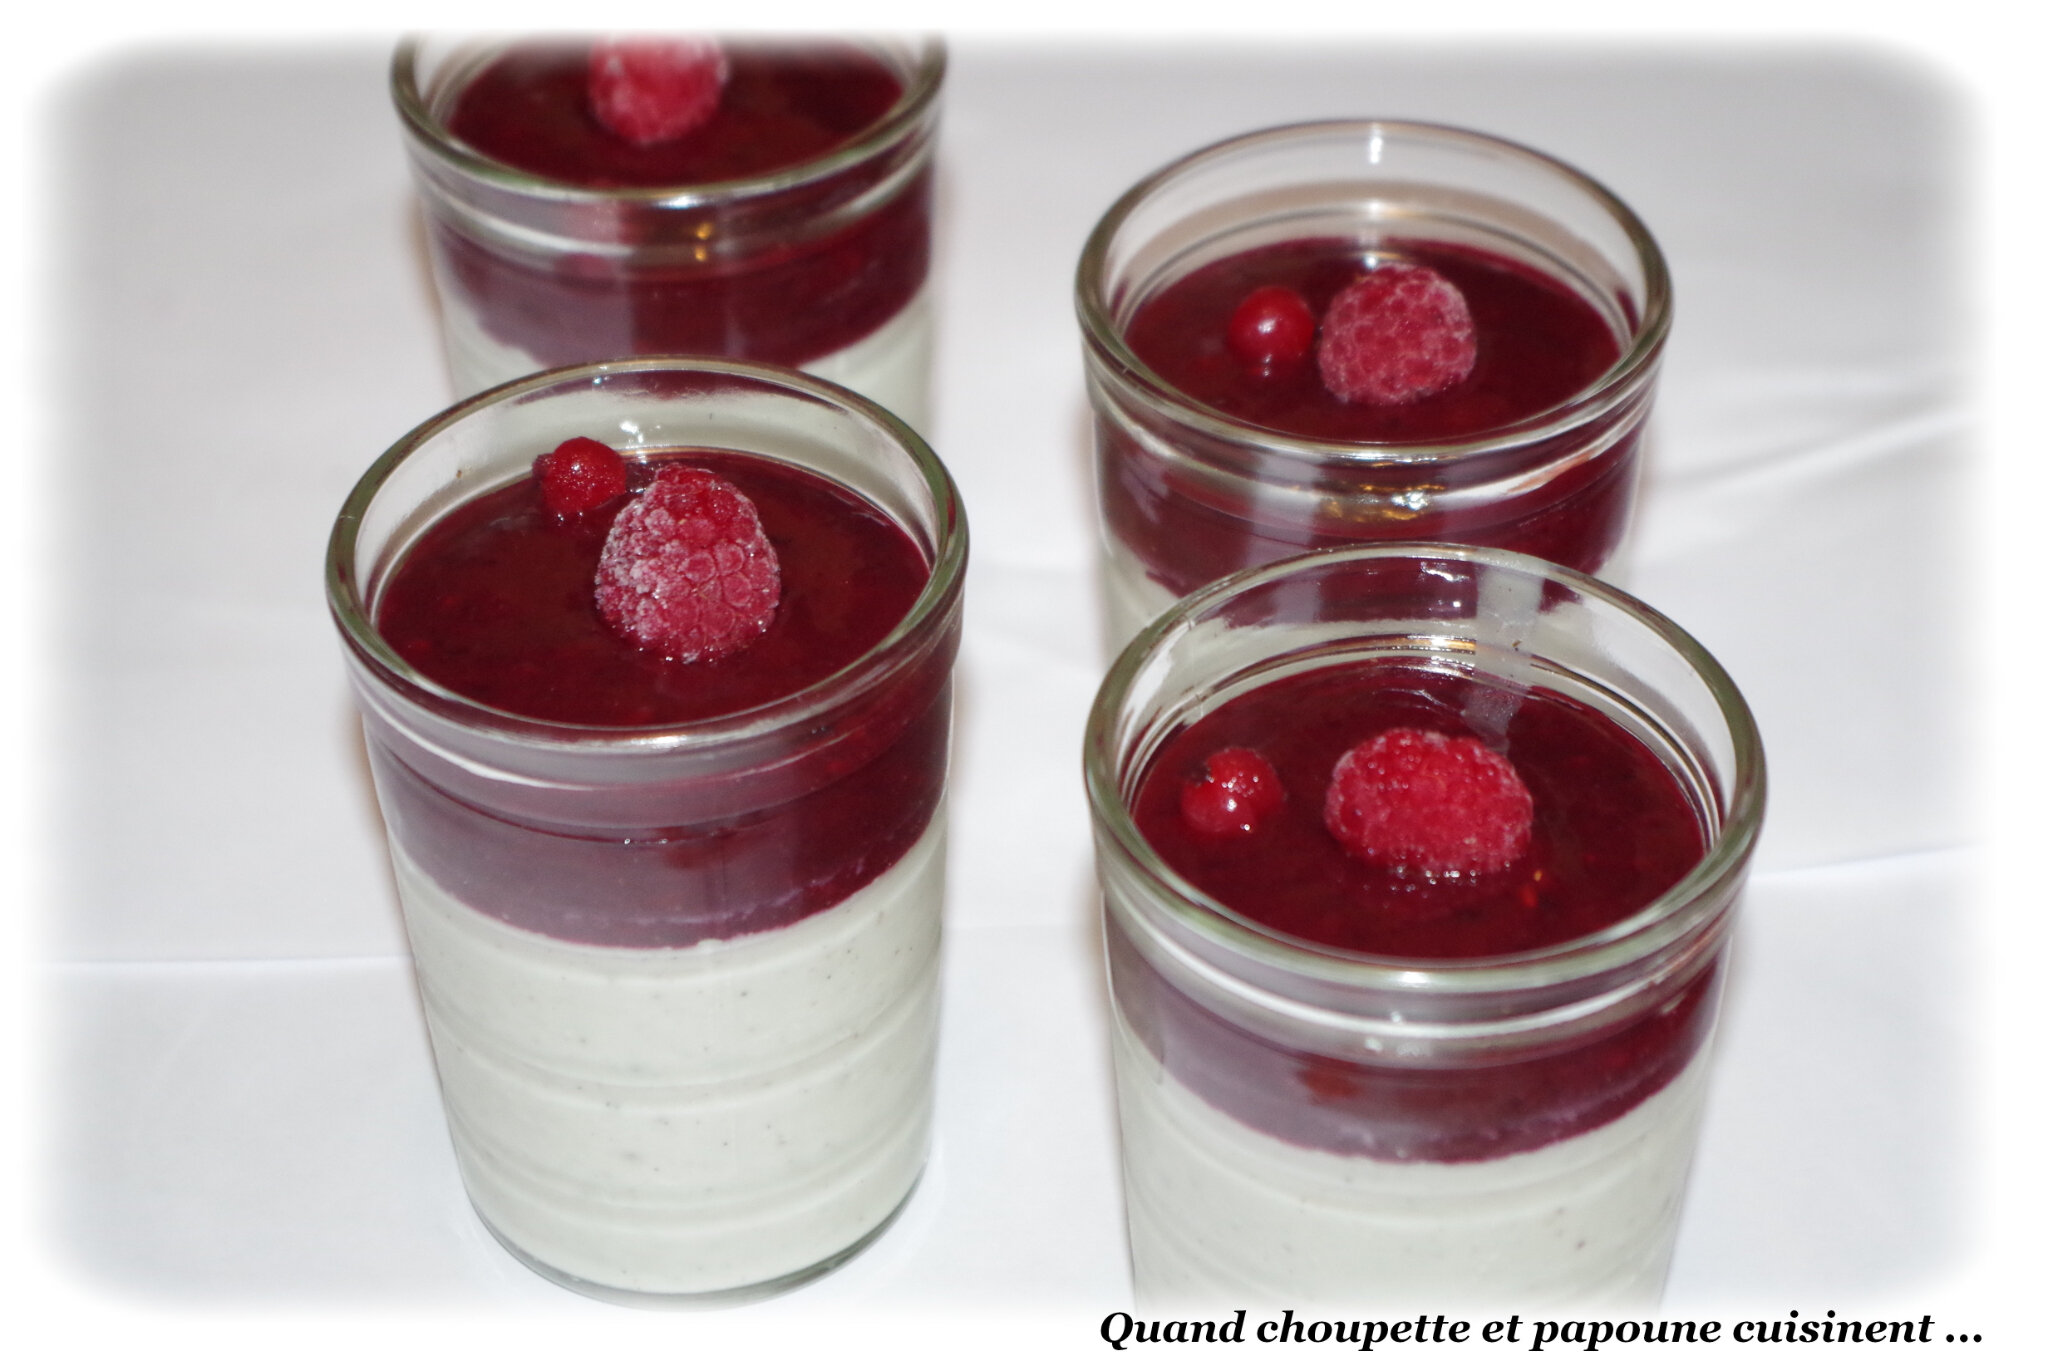 PANNA COTTA AU LAIT DE COCO ET FRUITS ROUGES